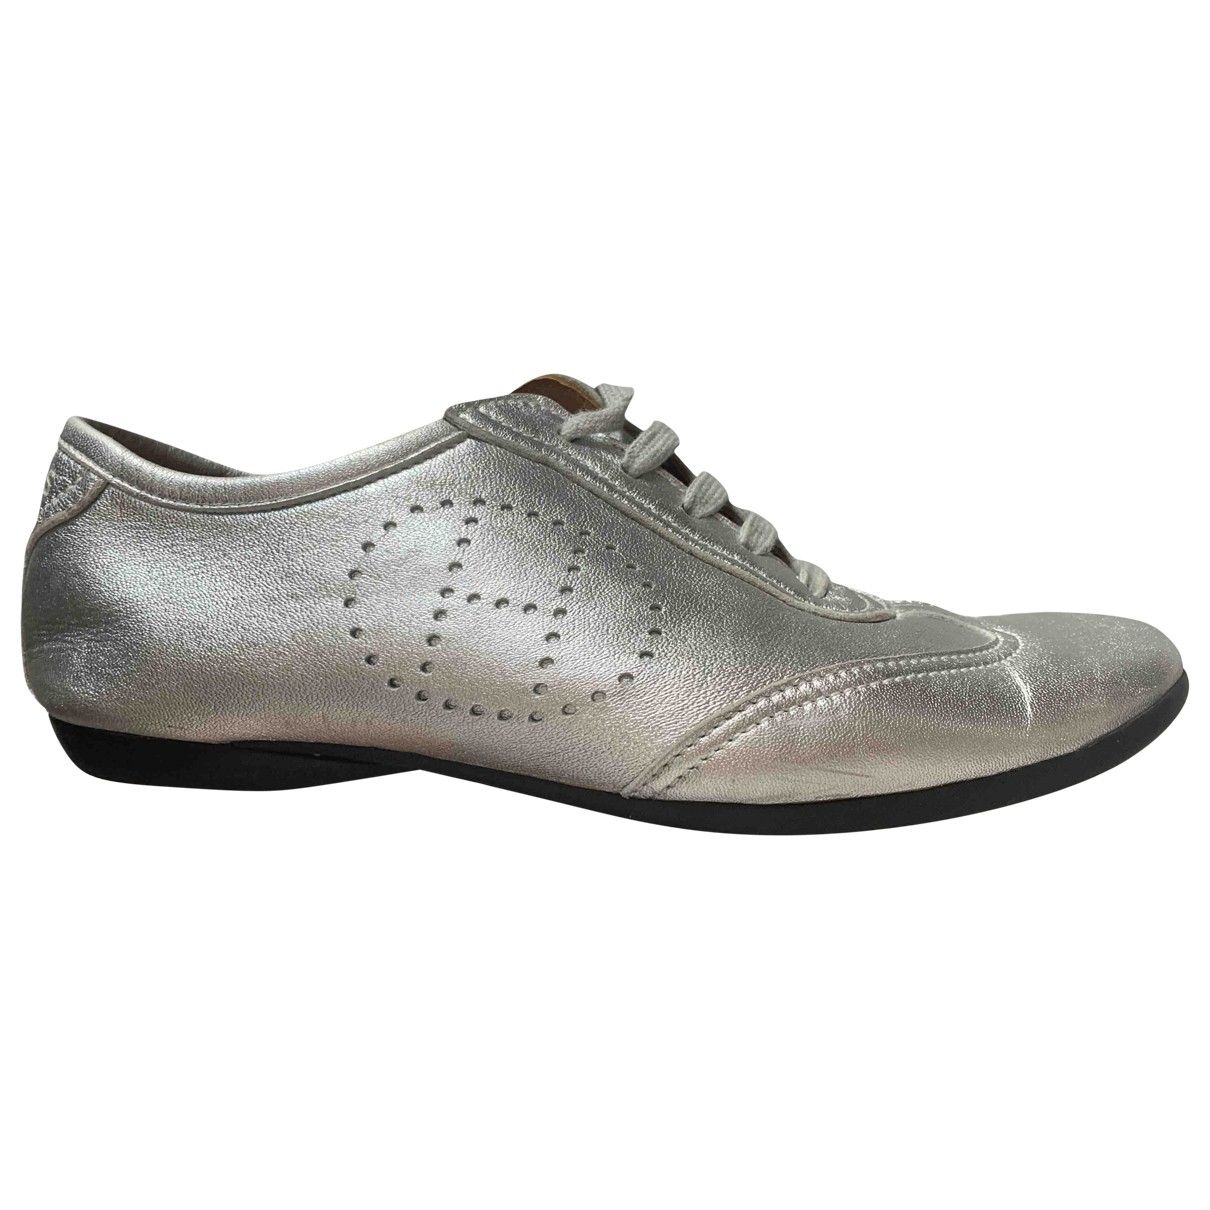 Hermès \N Silver Leather Trainers for Women 37 EU